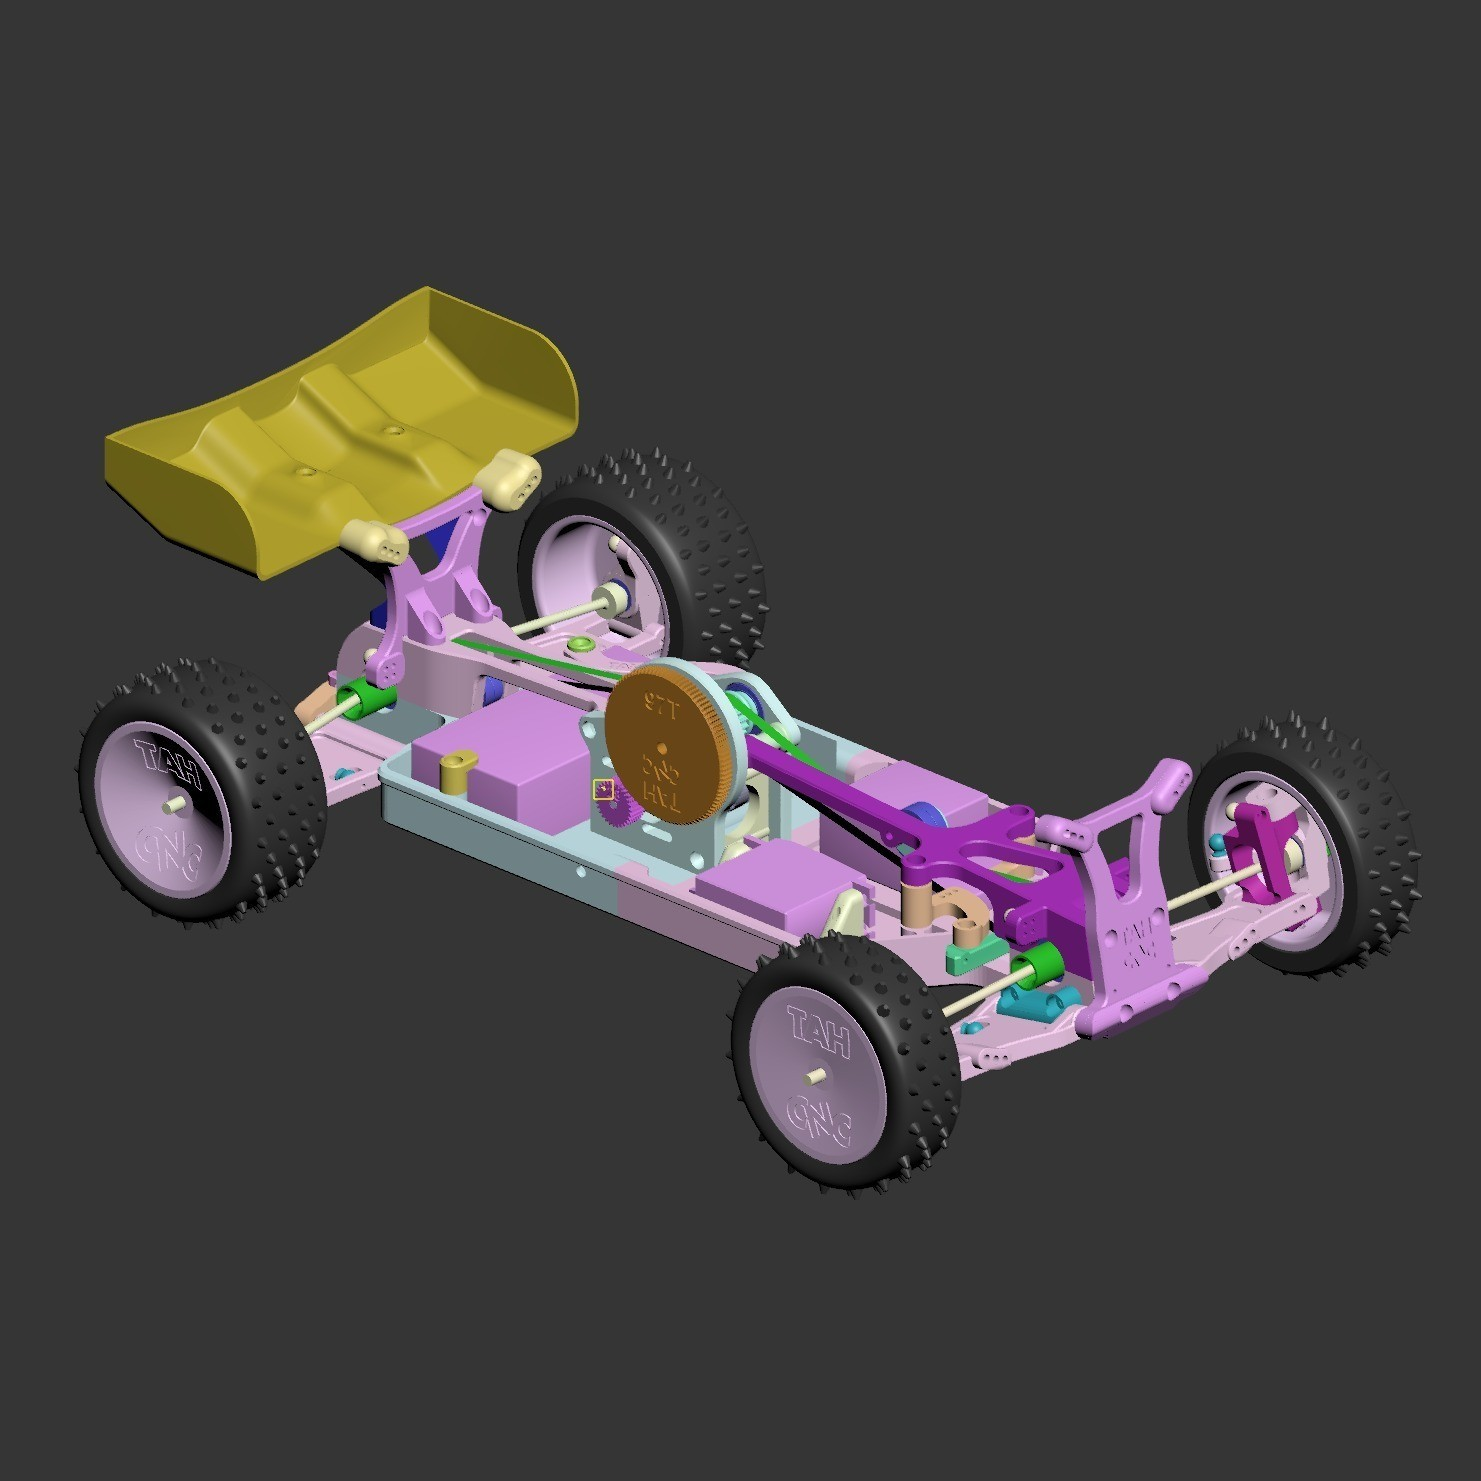 MKUltra07.jpg Download free STL file Mk Ultra - 3D printable 1/10 4wd buggy • Object to 3D print, tahustvedt